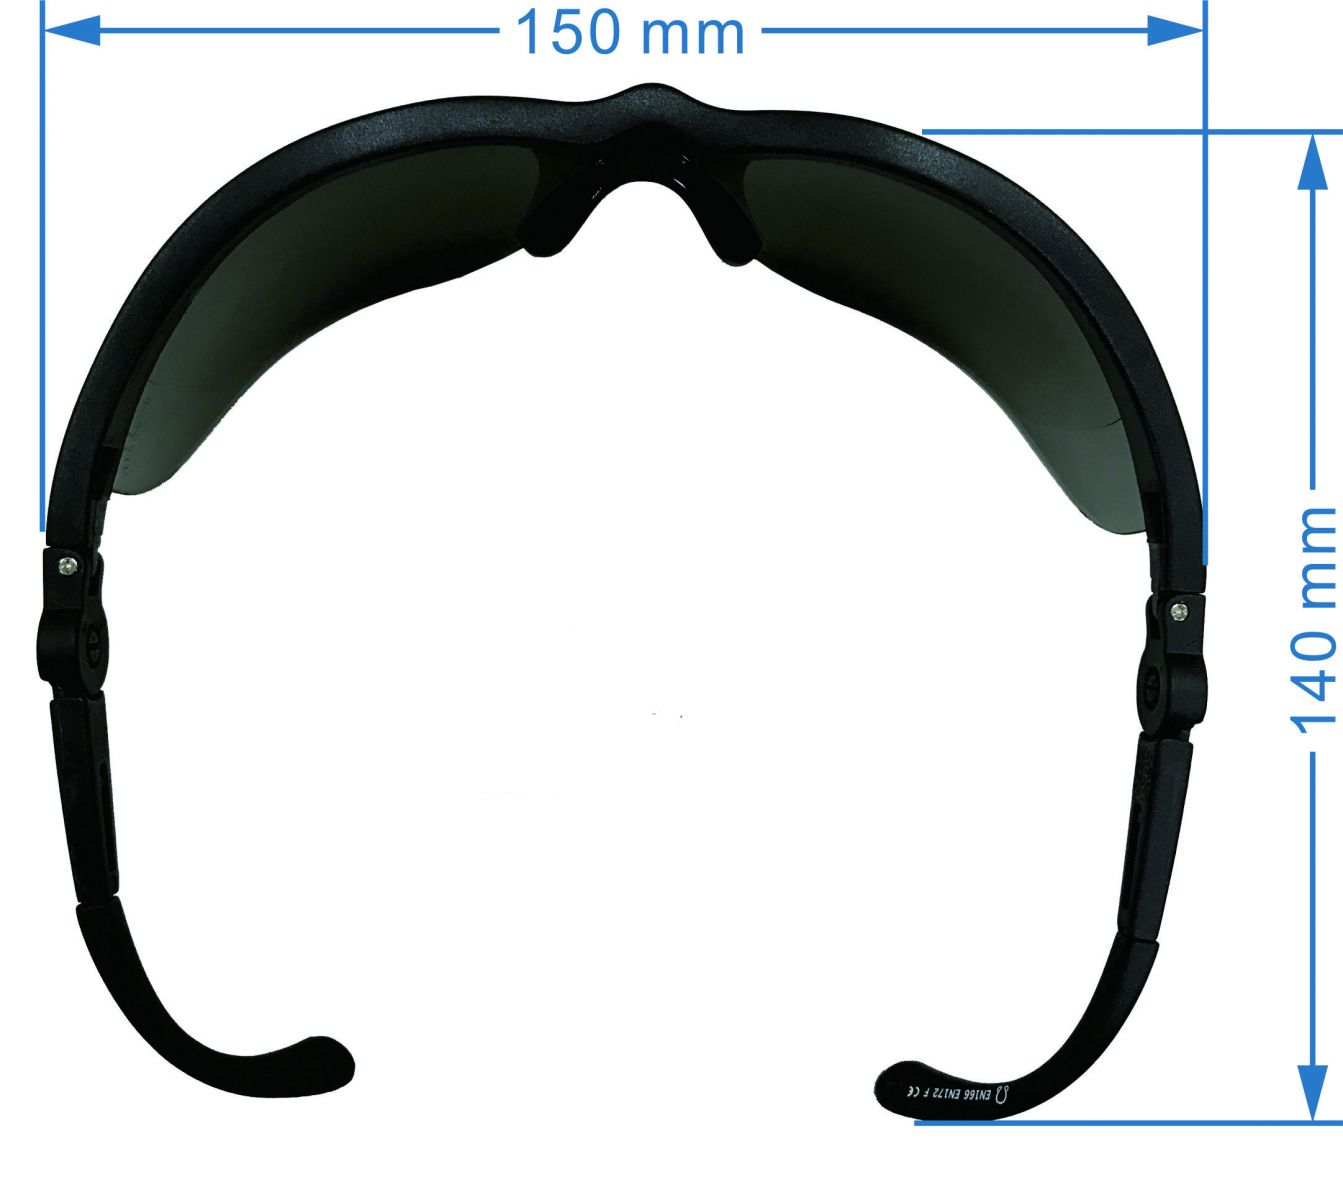 965b67c9755 Parkson Safety Industrial Corp. - High adjustable safety glasses ...